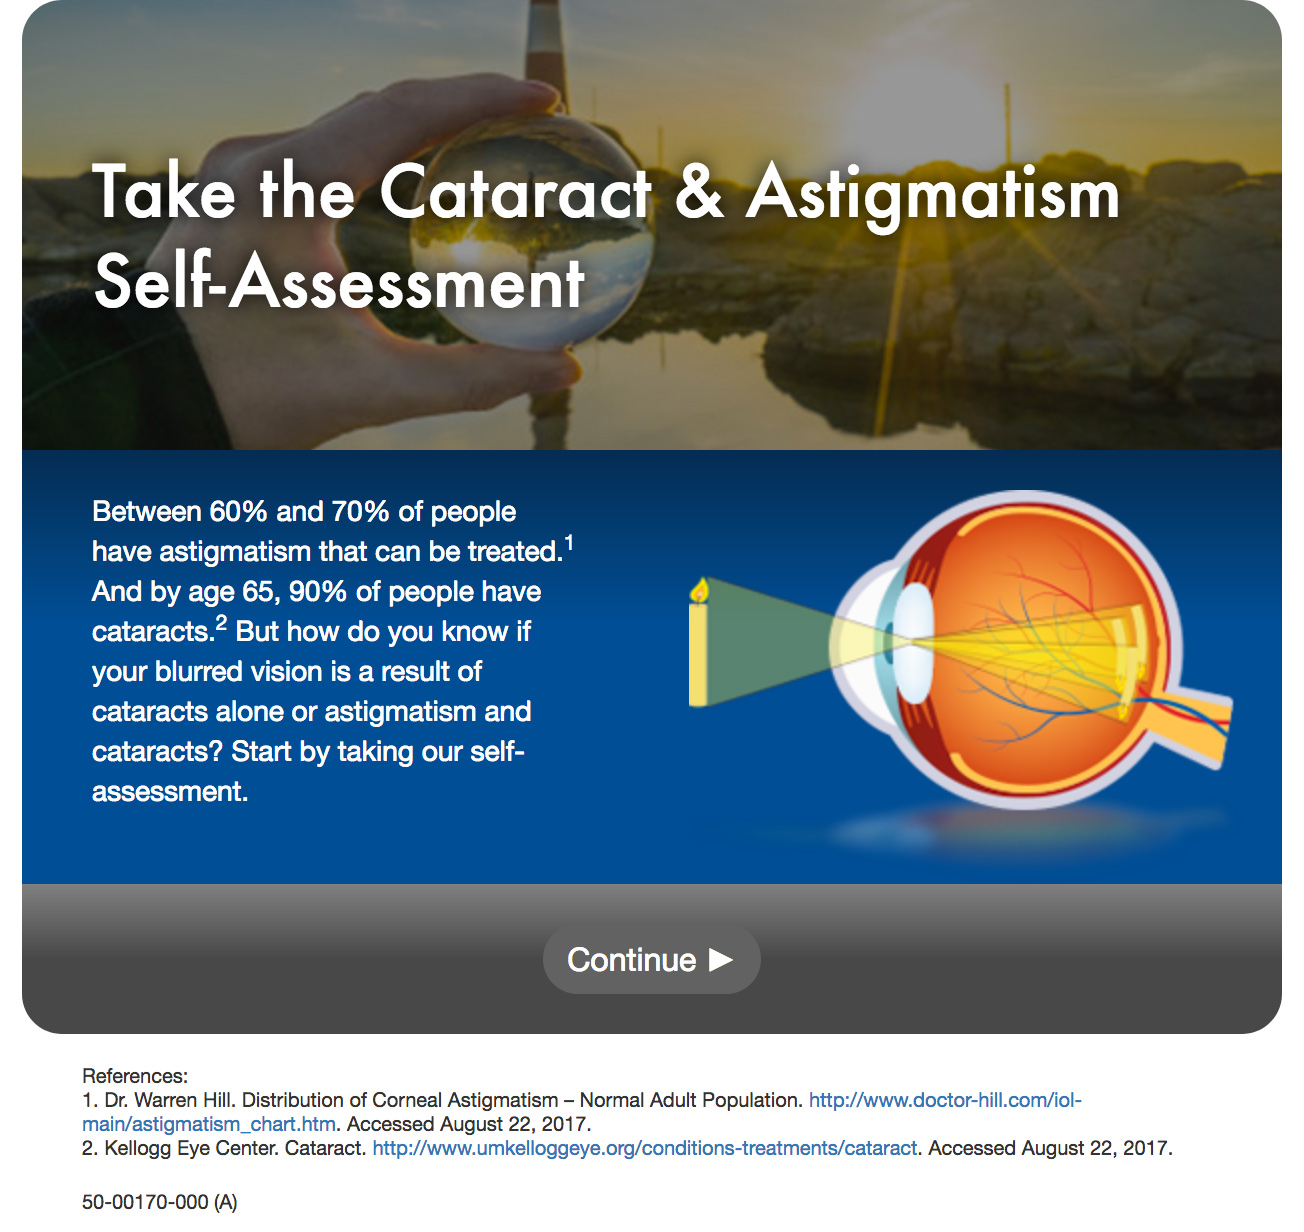 Take the Cataract & Astigmatism Self-Assessment